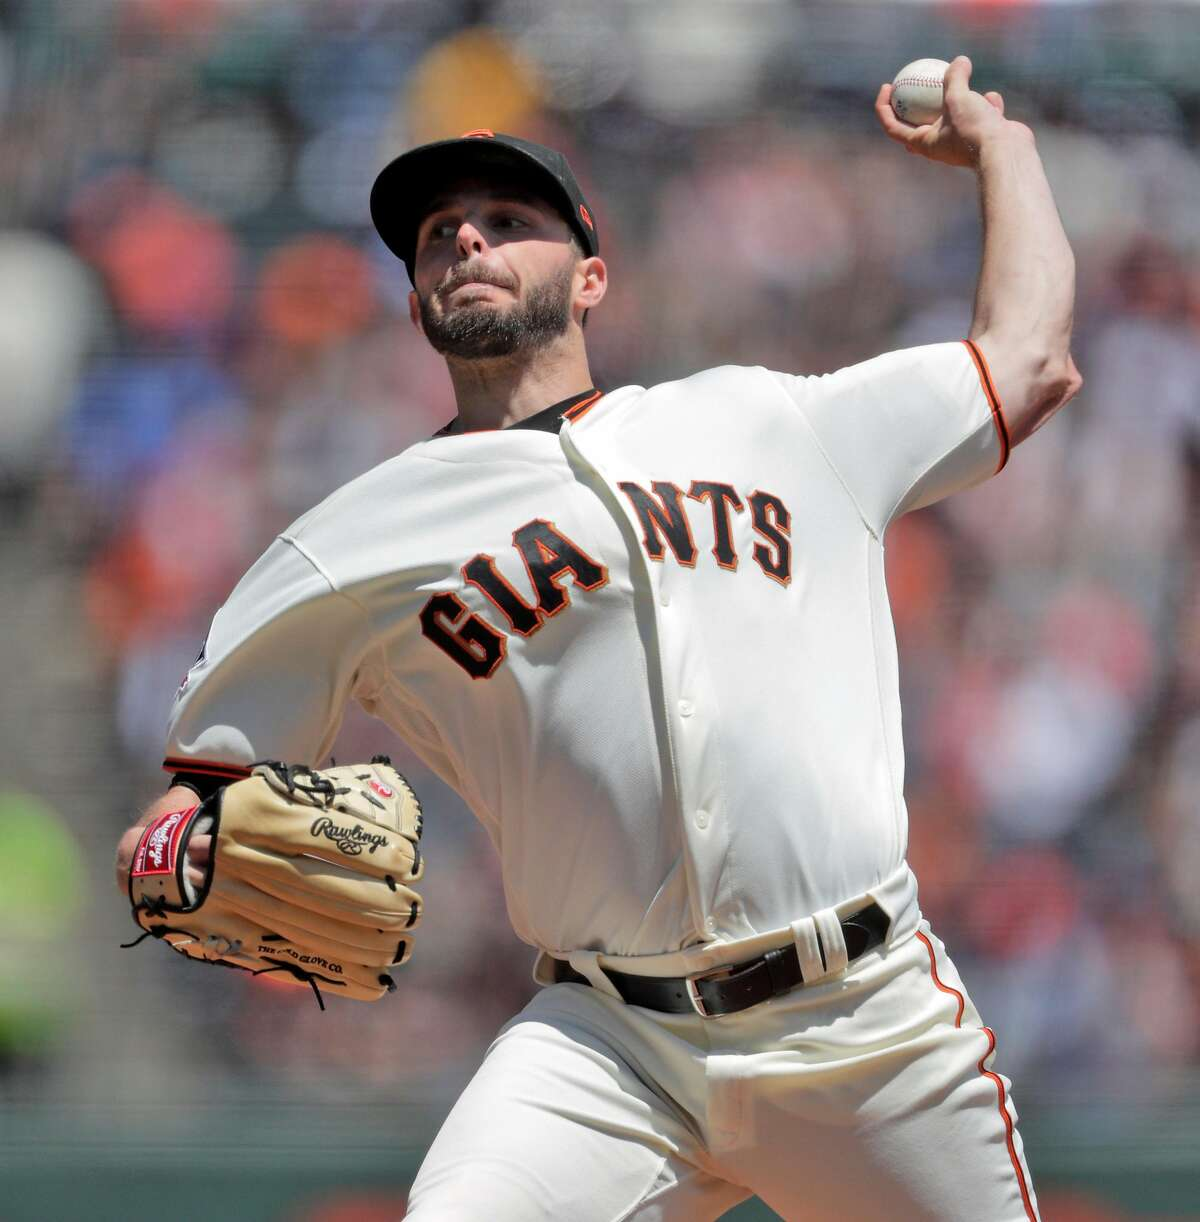 Andrew Suarez (59) pitches in the second inning as the San Francisco Giants played the Milwaukee Brewers at AT&T Park in San Francisco, Calif., on Sunday, July 29, 2018.